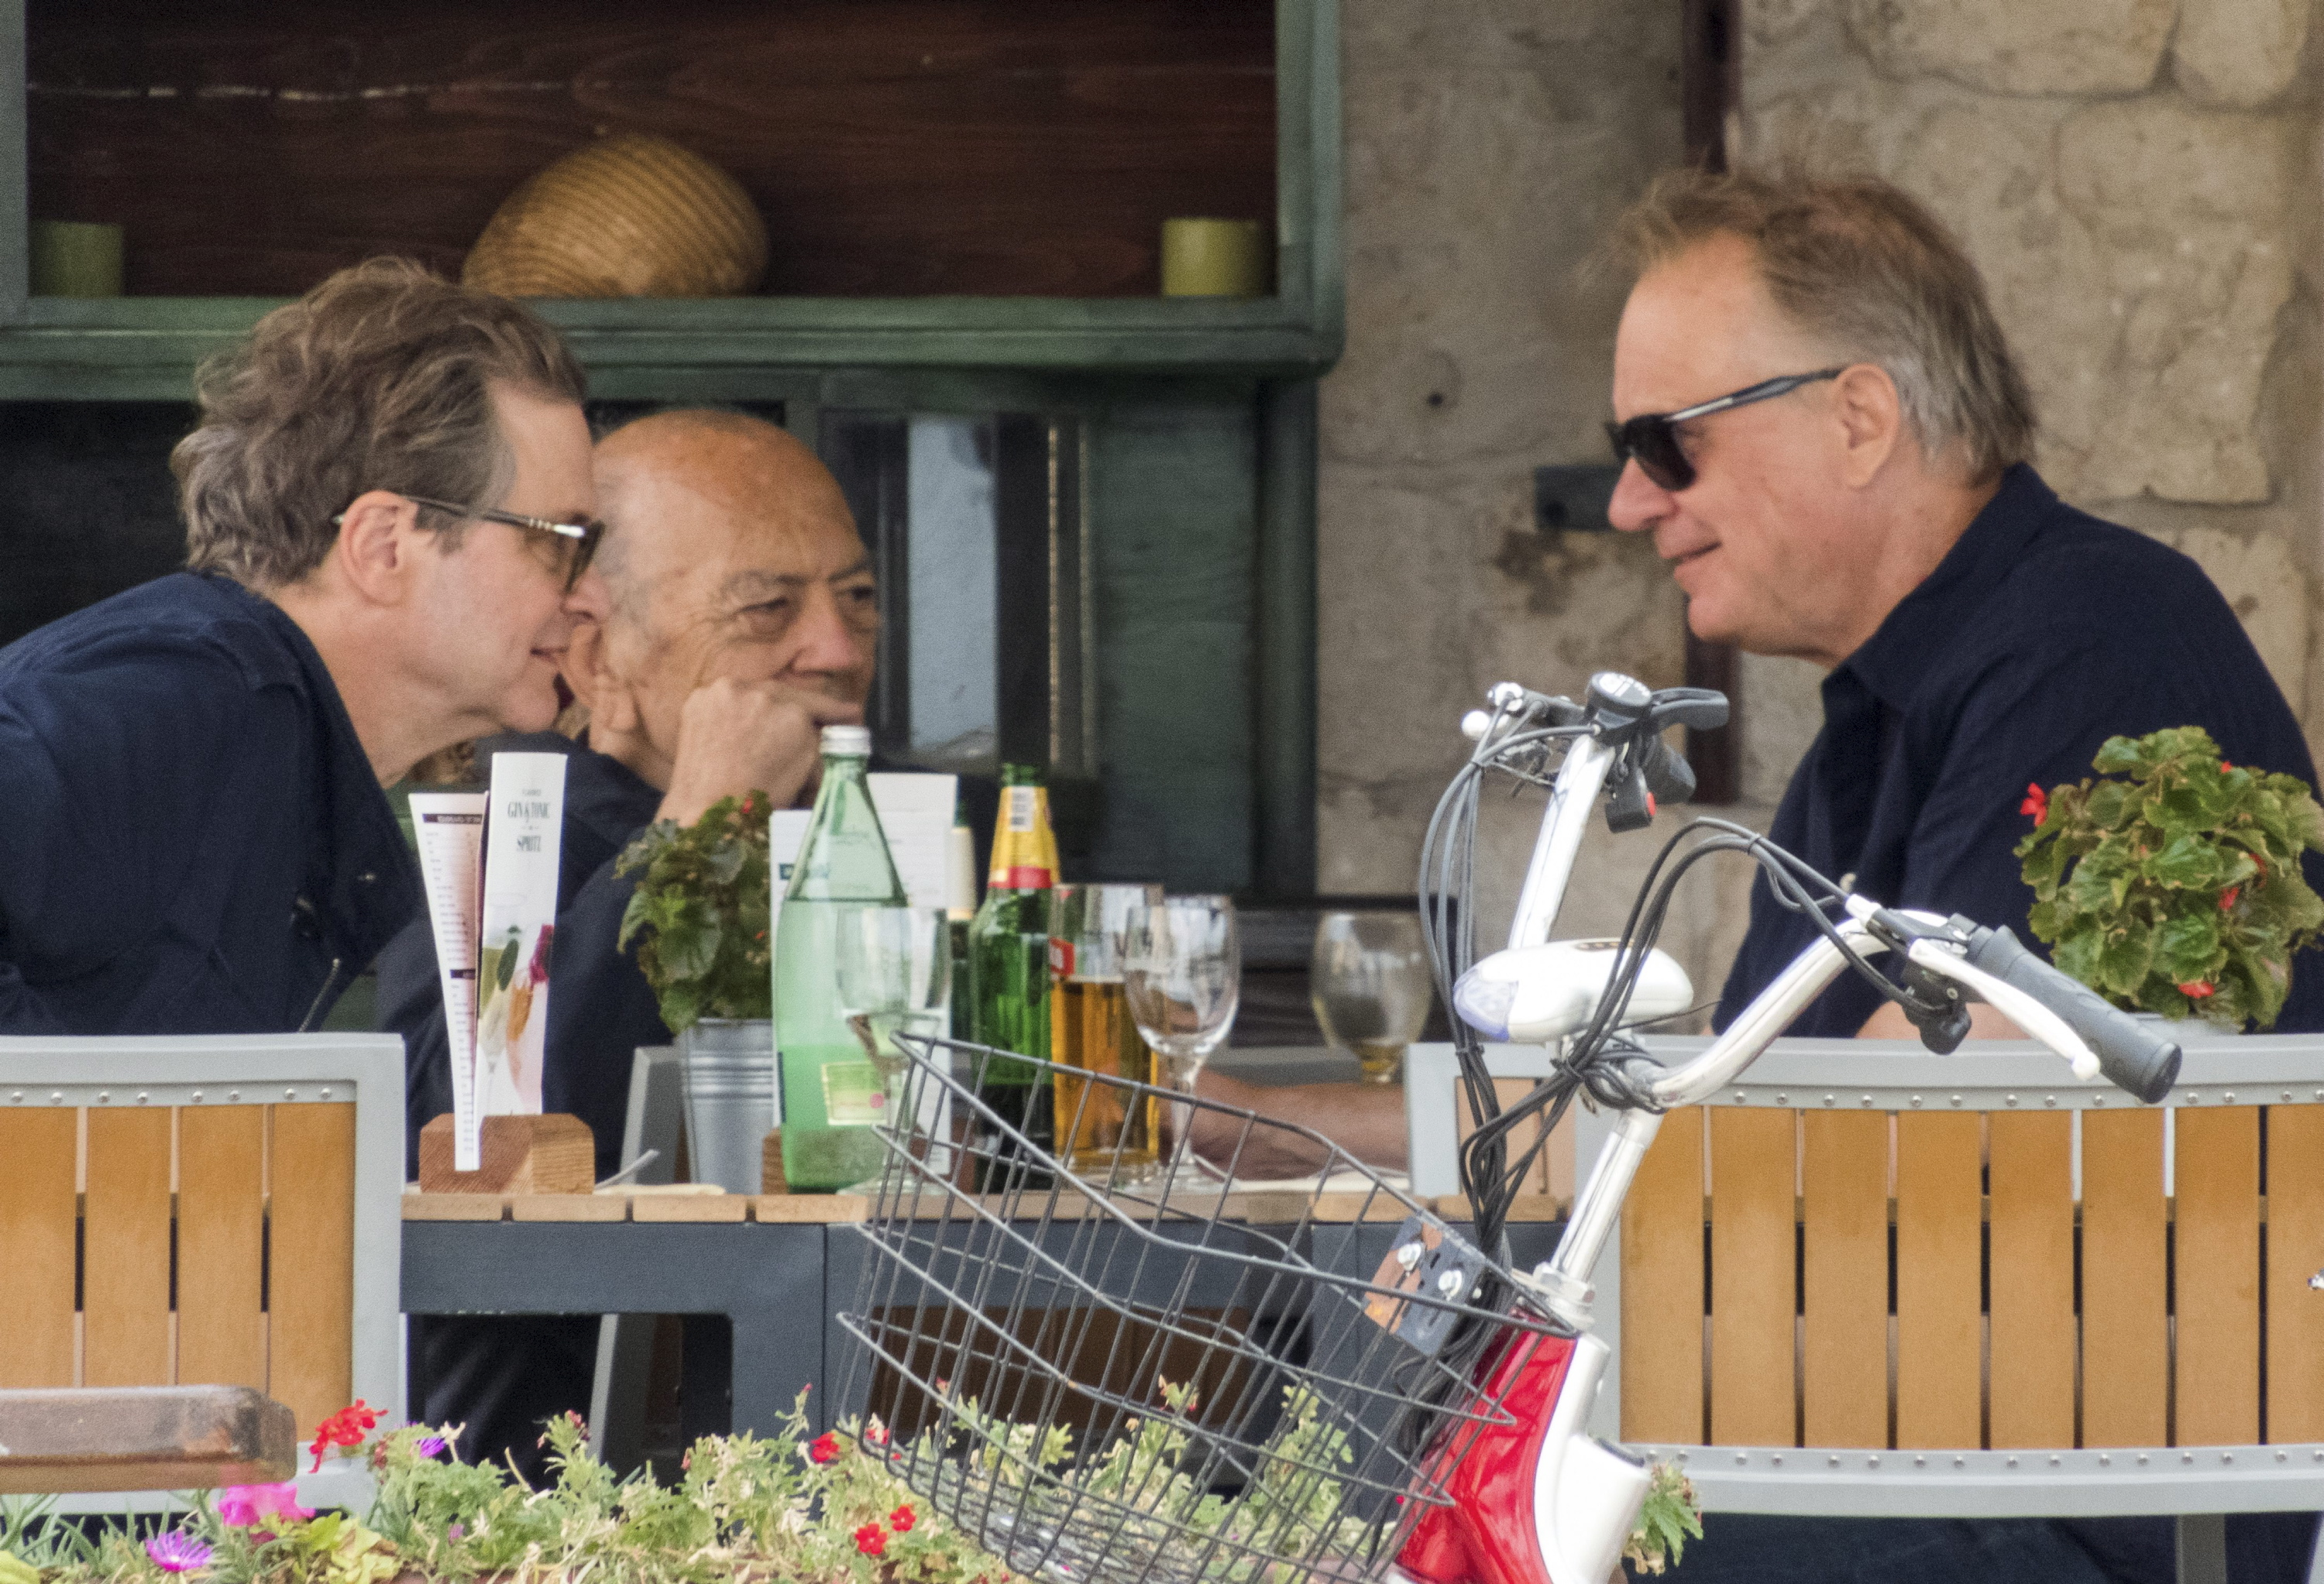 Stellan Skarsgard and Colin Firth were seen chatting over lunch while in Vis, Croatia on Oct. 5, 2017.